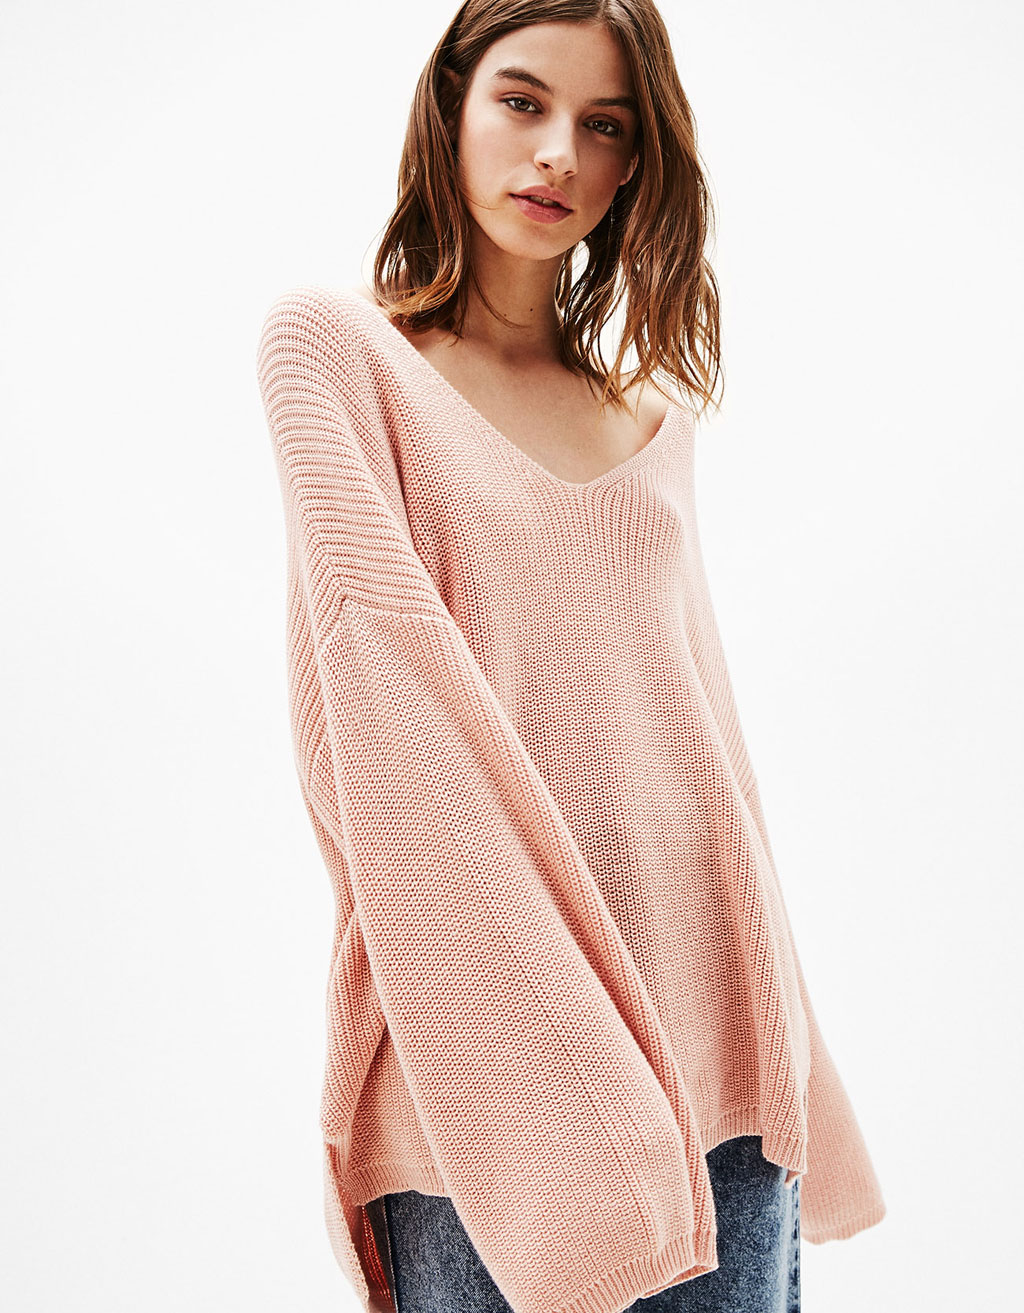 V-neck sweater with wide sleeves